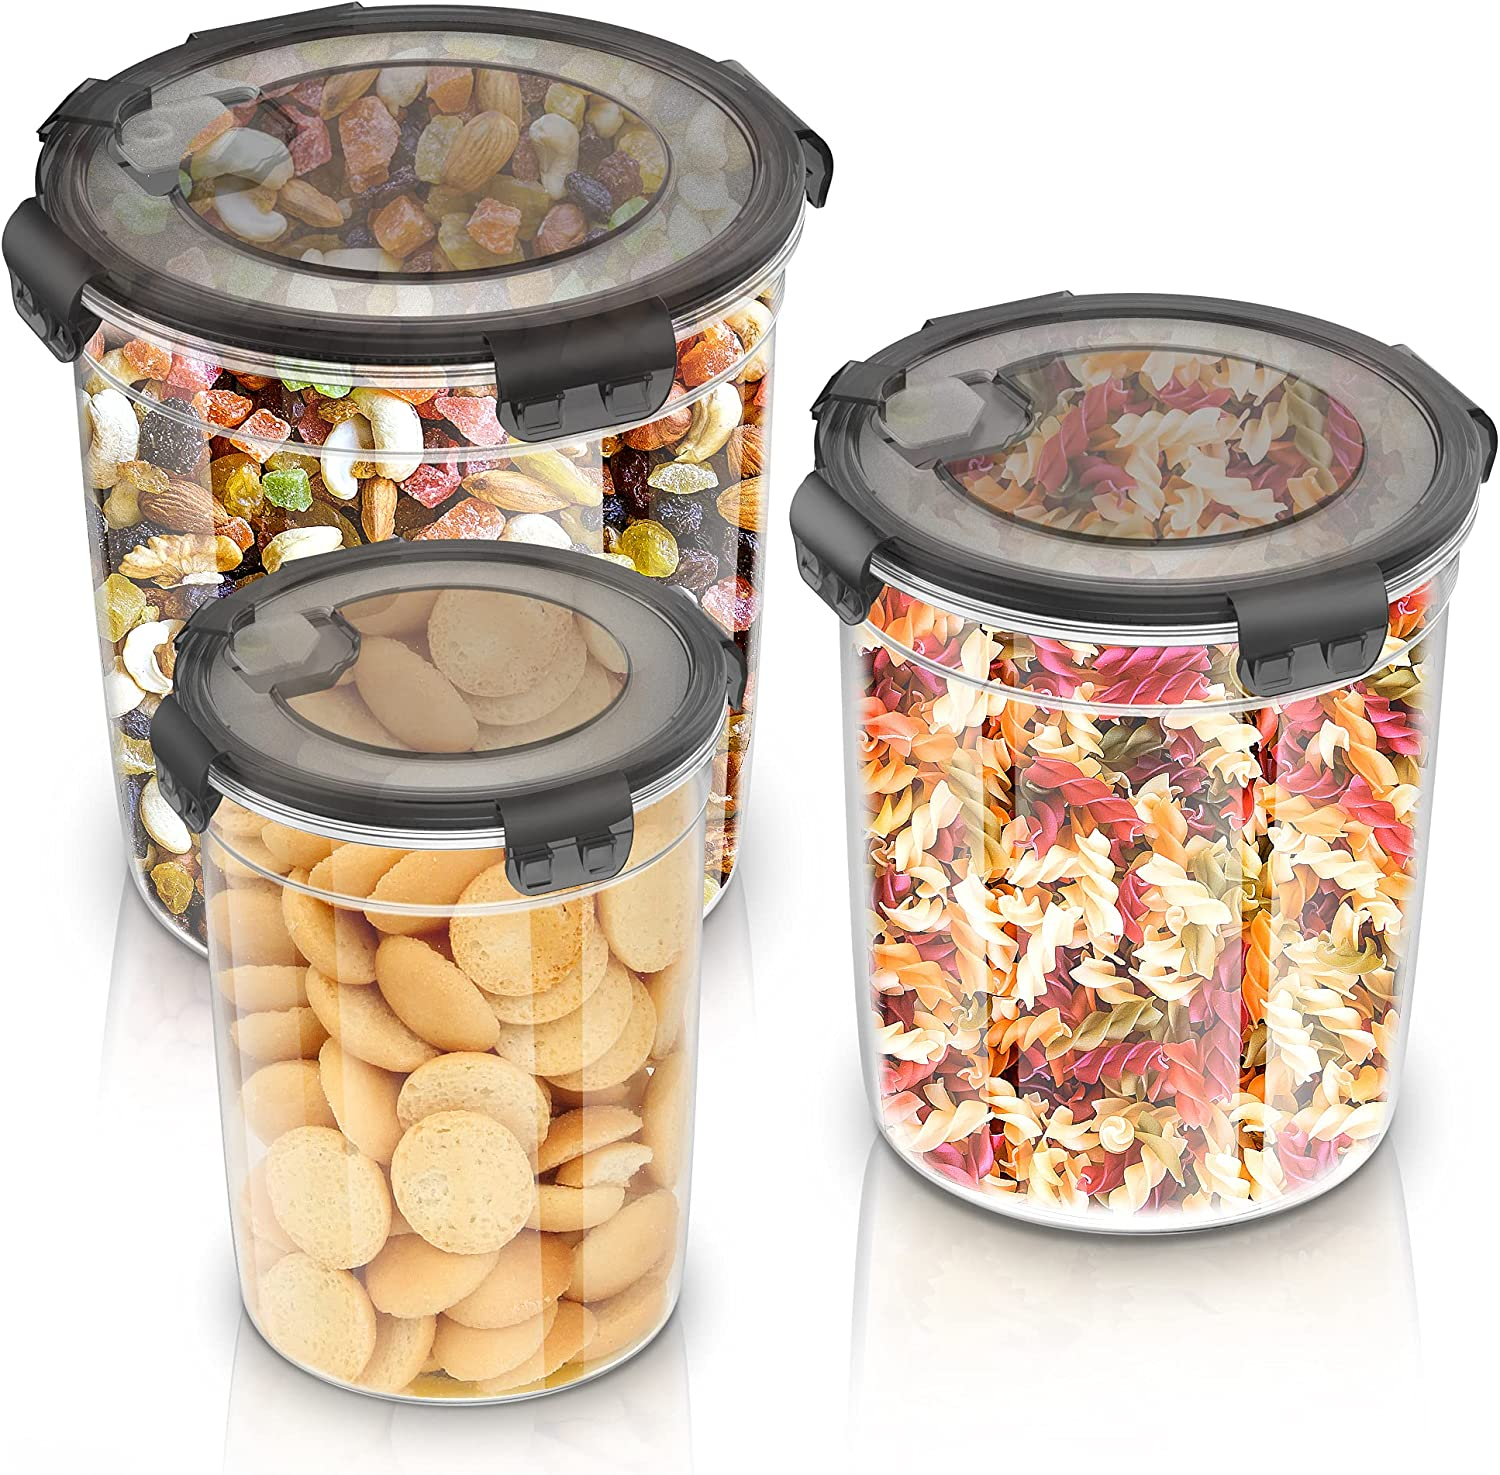 Food Storage Containers Set with Lids-3 Pack, Airtight Plastic Dry Food Canisters for Kitchen Pantry Organization and Storage - BPA-Free, Ideal for Flour, Cereal & Sugar